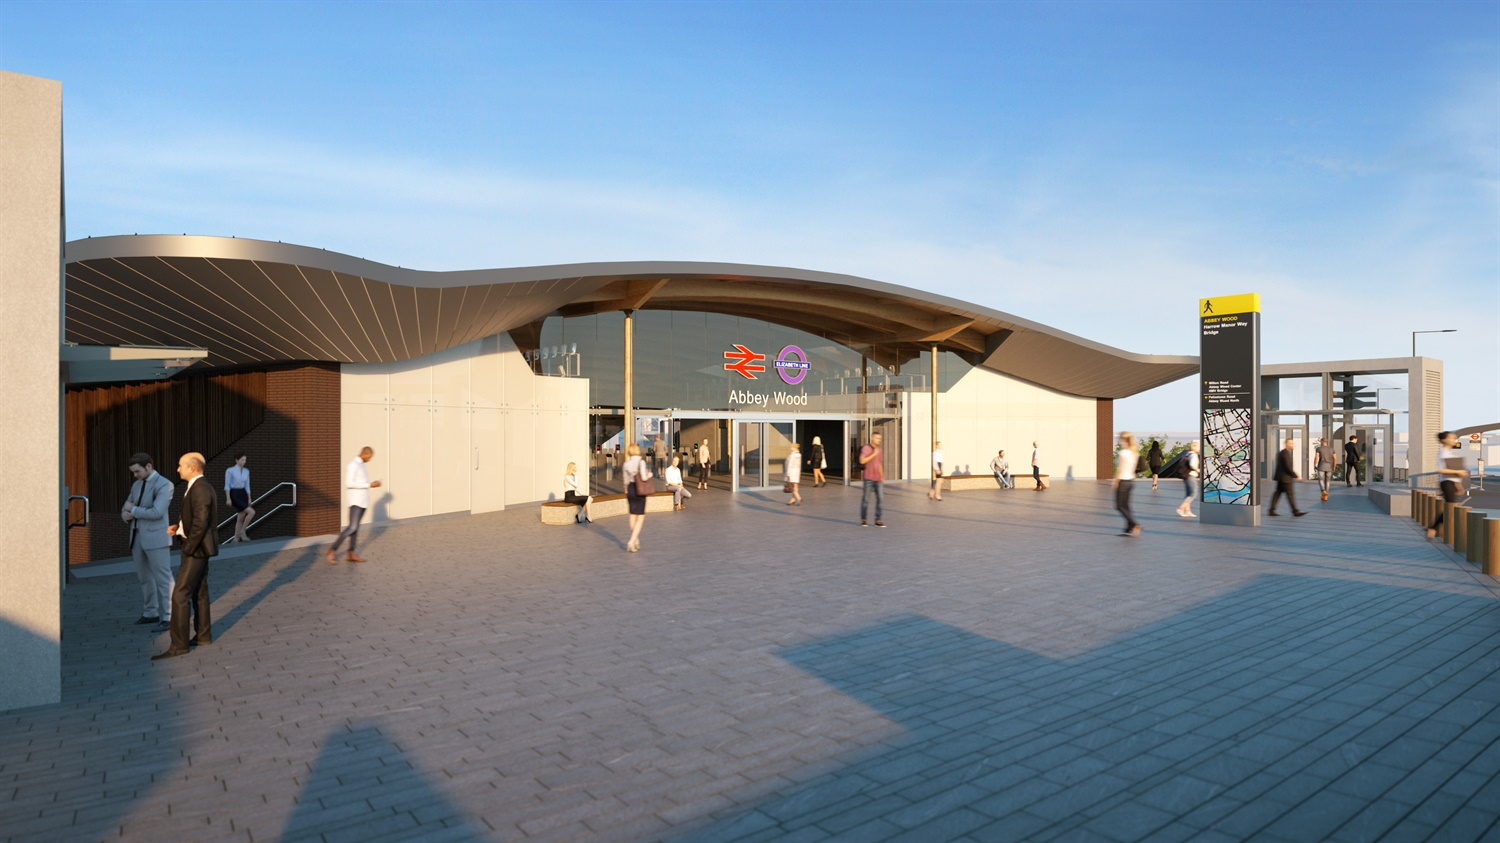 Work moves forward to prepare Abbey Wood station for Crossrail